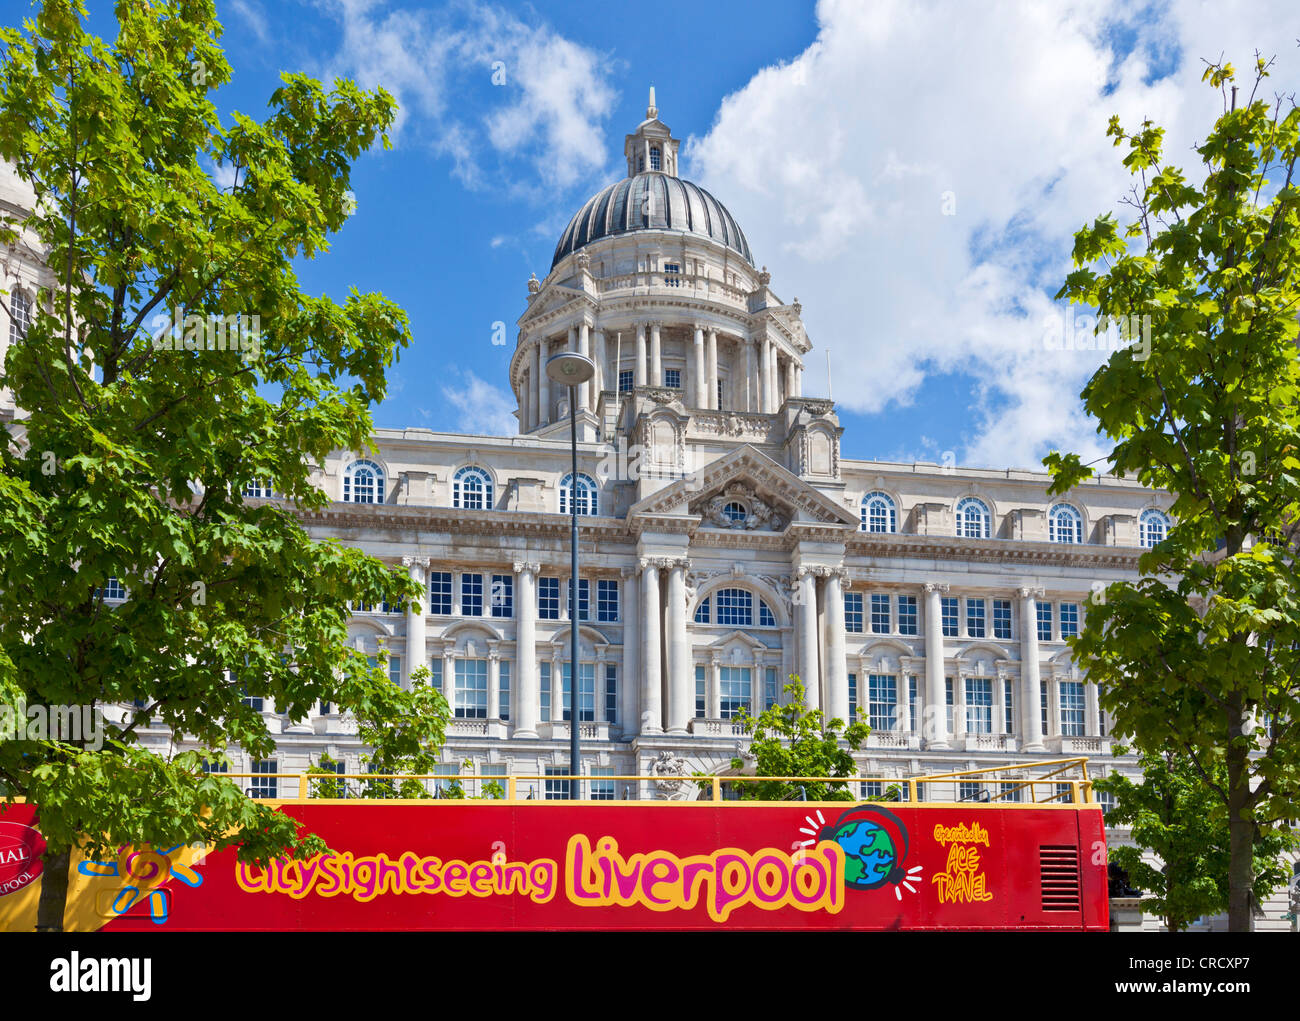 The Port of Liverpool Building with a red sightseeing tour bus outside Merseyside England uk gb eu europe - Stock Image